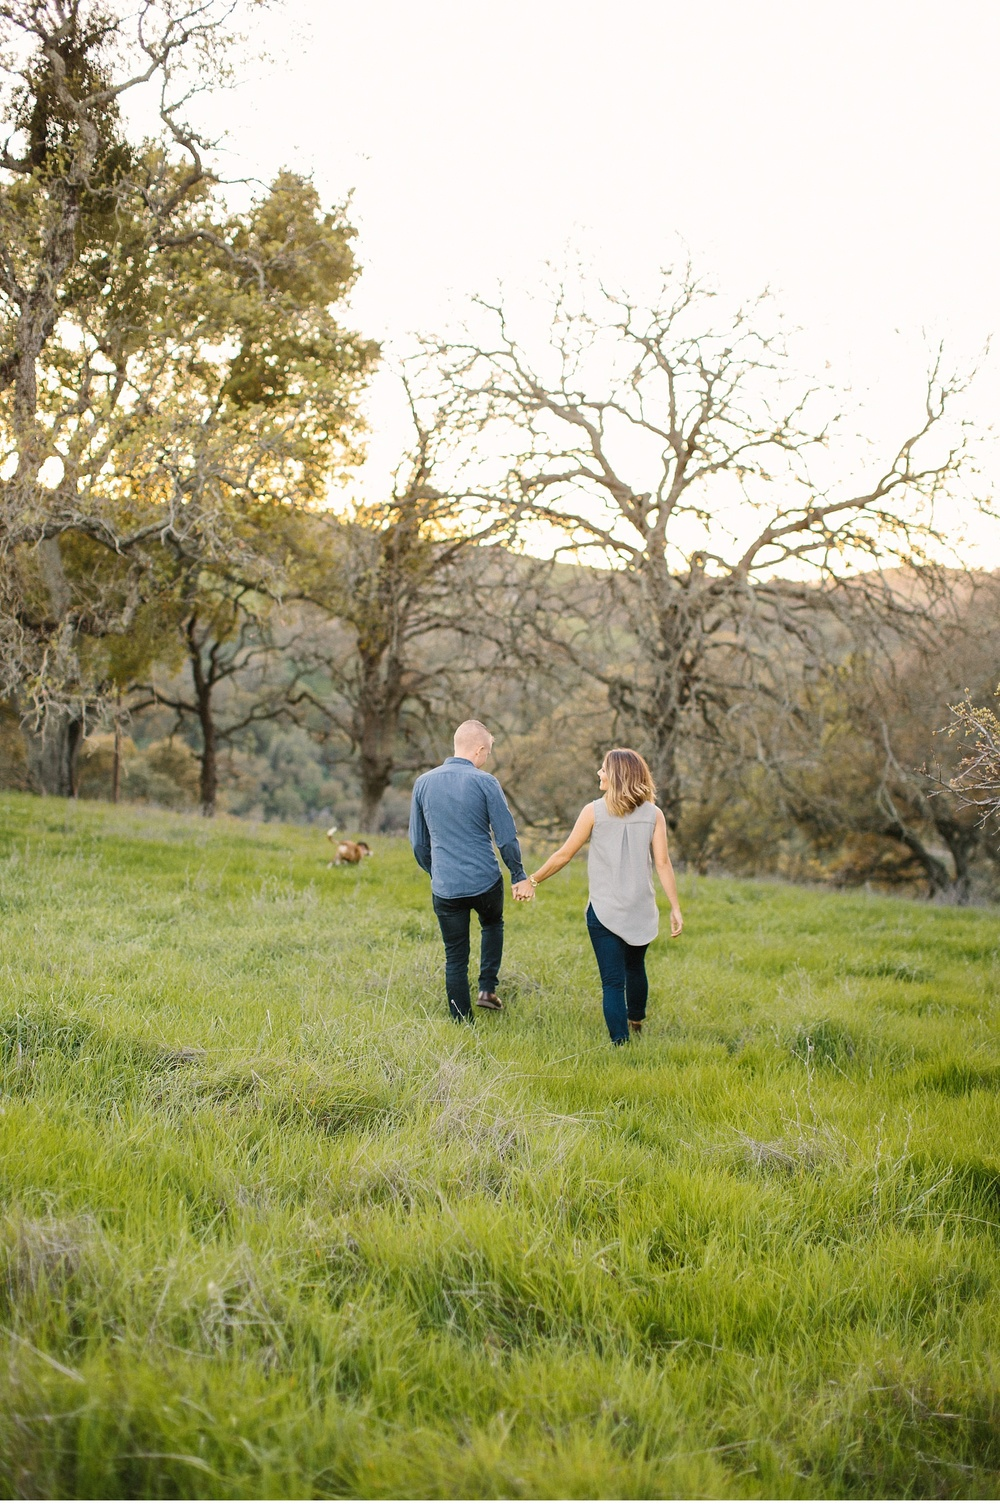 Bay_Area_Engagement_Briones_Martinez_California_Wedding_Photographer_002.jpg